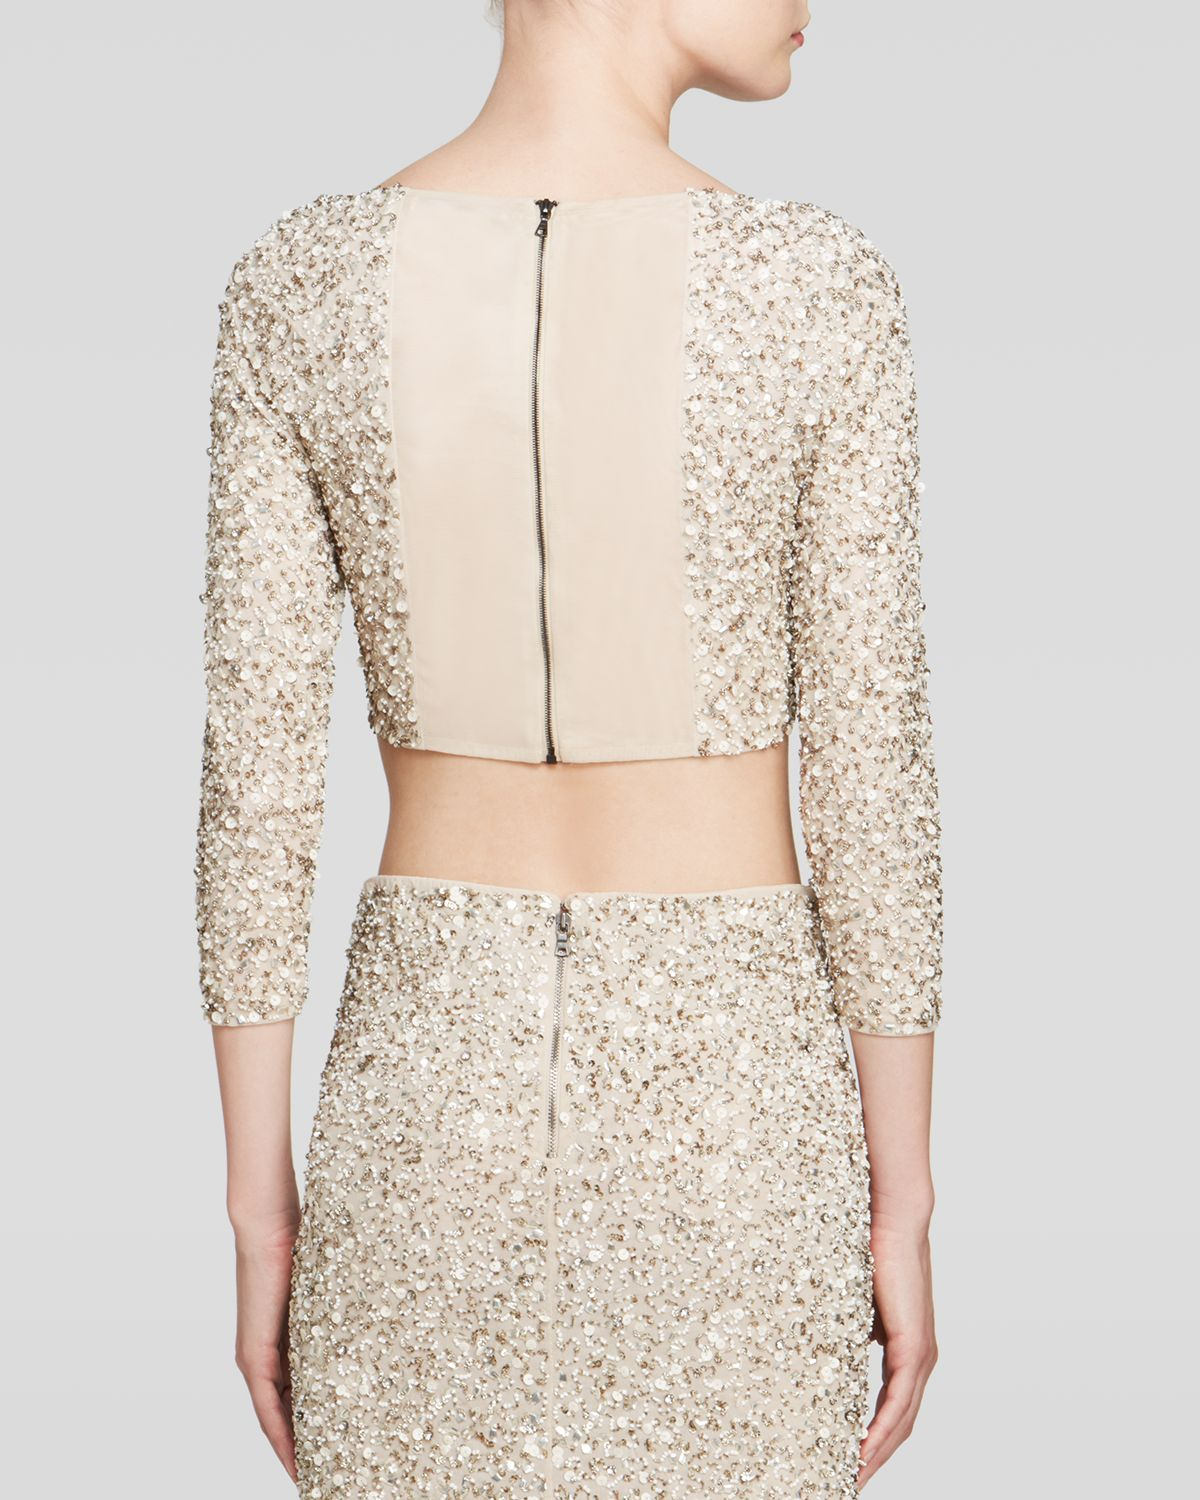 9b45686d87229 Alice + Olivia Lacey Embellished Crop Top in Natural - Lyst